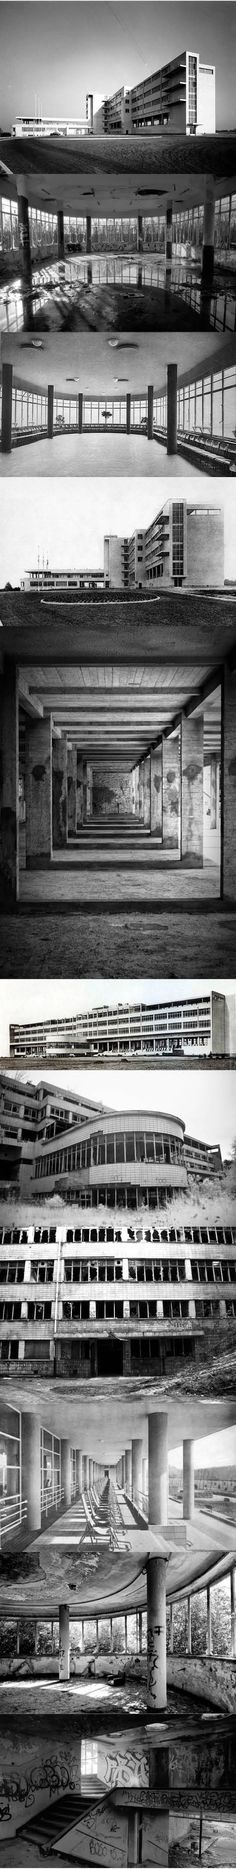 1937 Maxine Brunfaut - Sanatorium Joseph Lemaire / Tombeek Belgium / modernist / abandoned / concrete / Where other early modernist sanatoria Paimio and Zonnestraal have been restored to their former glory this one in Belgium is in a rather sad, sad state.